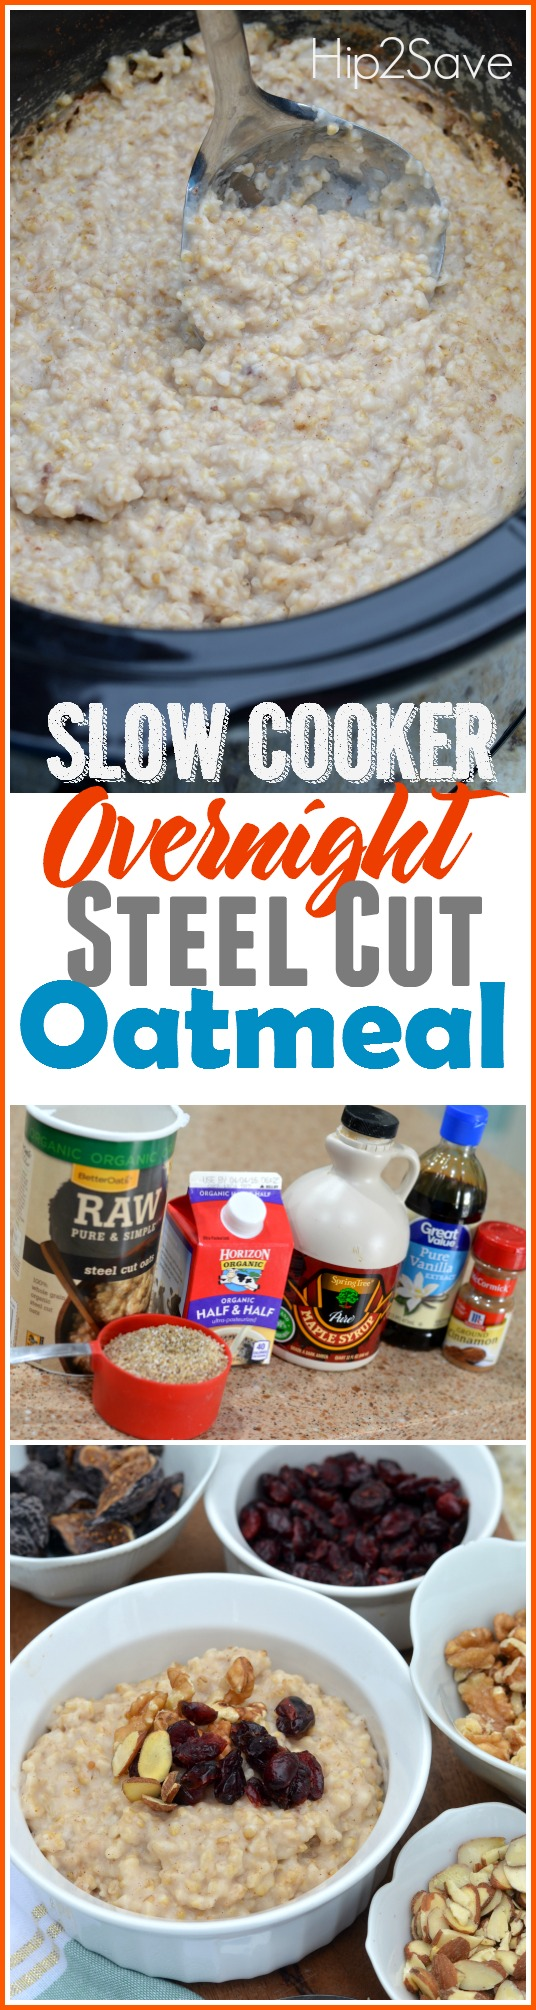 overnight slow cooker steel cut oatmeal. Let your slow cooker do the work and wake up to a wonderful warm bowl of oatmeal. Your tummy will thank you for this breakfast!